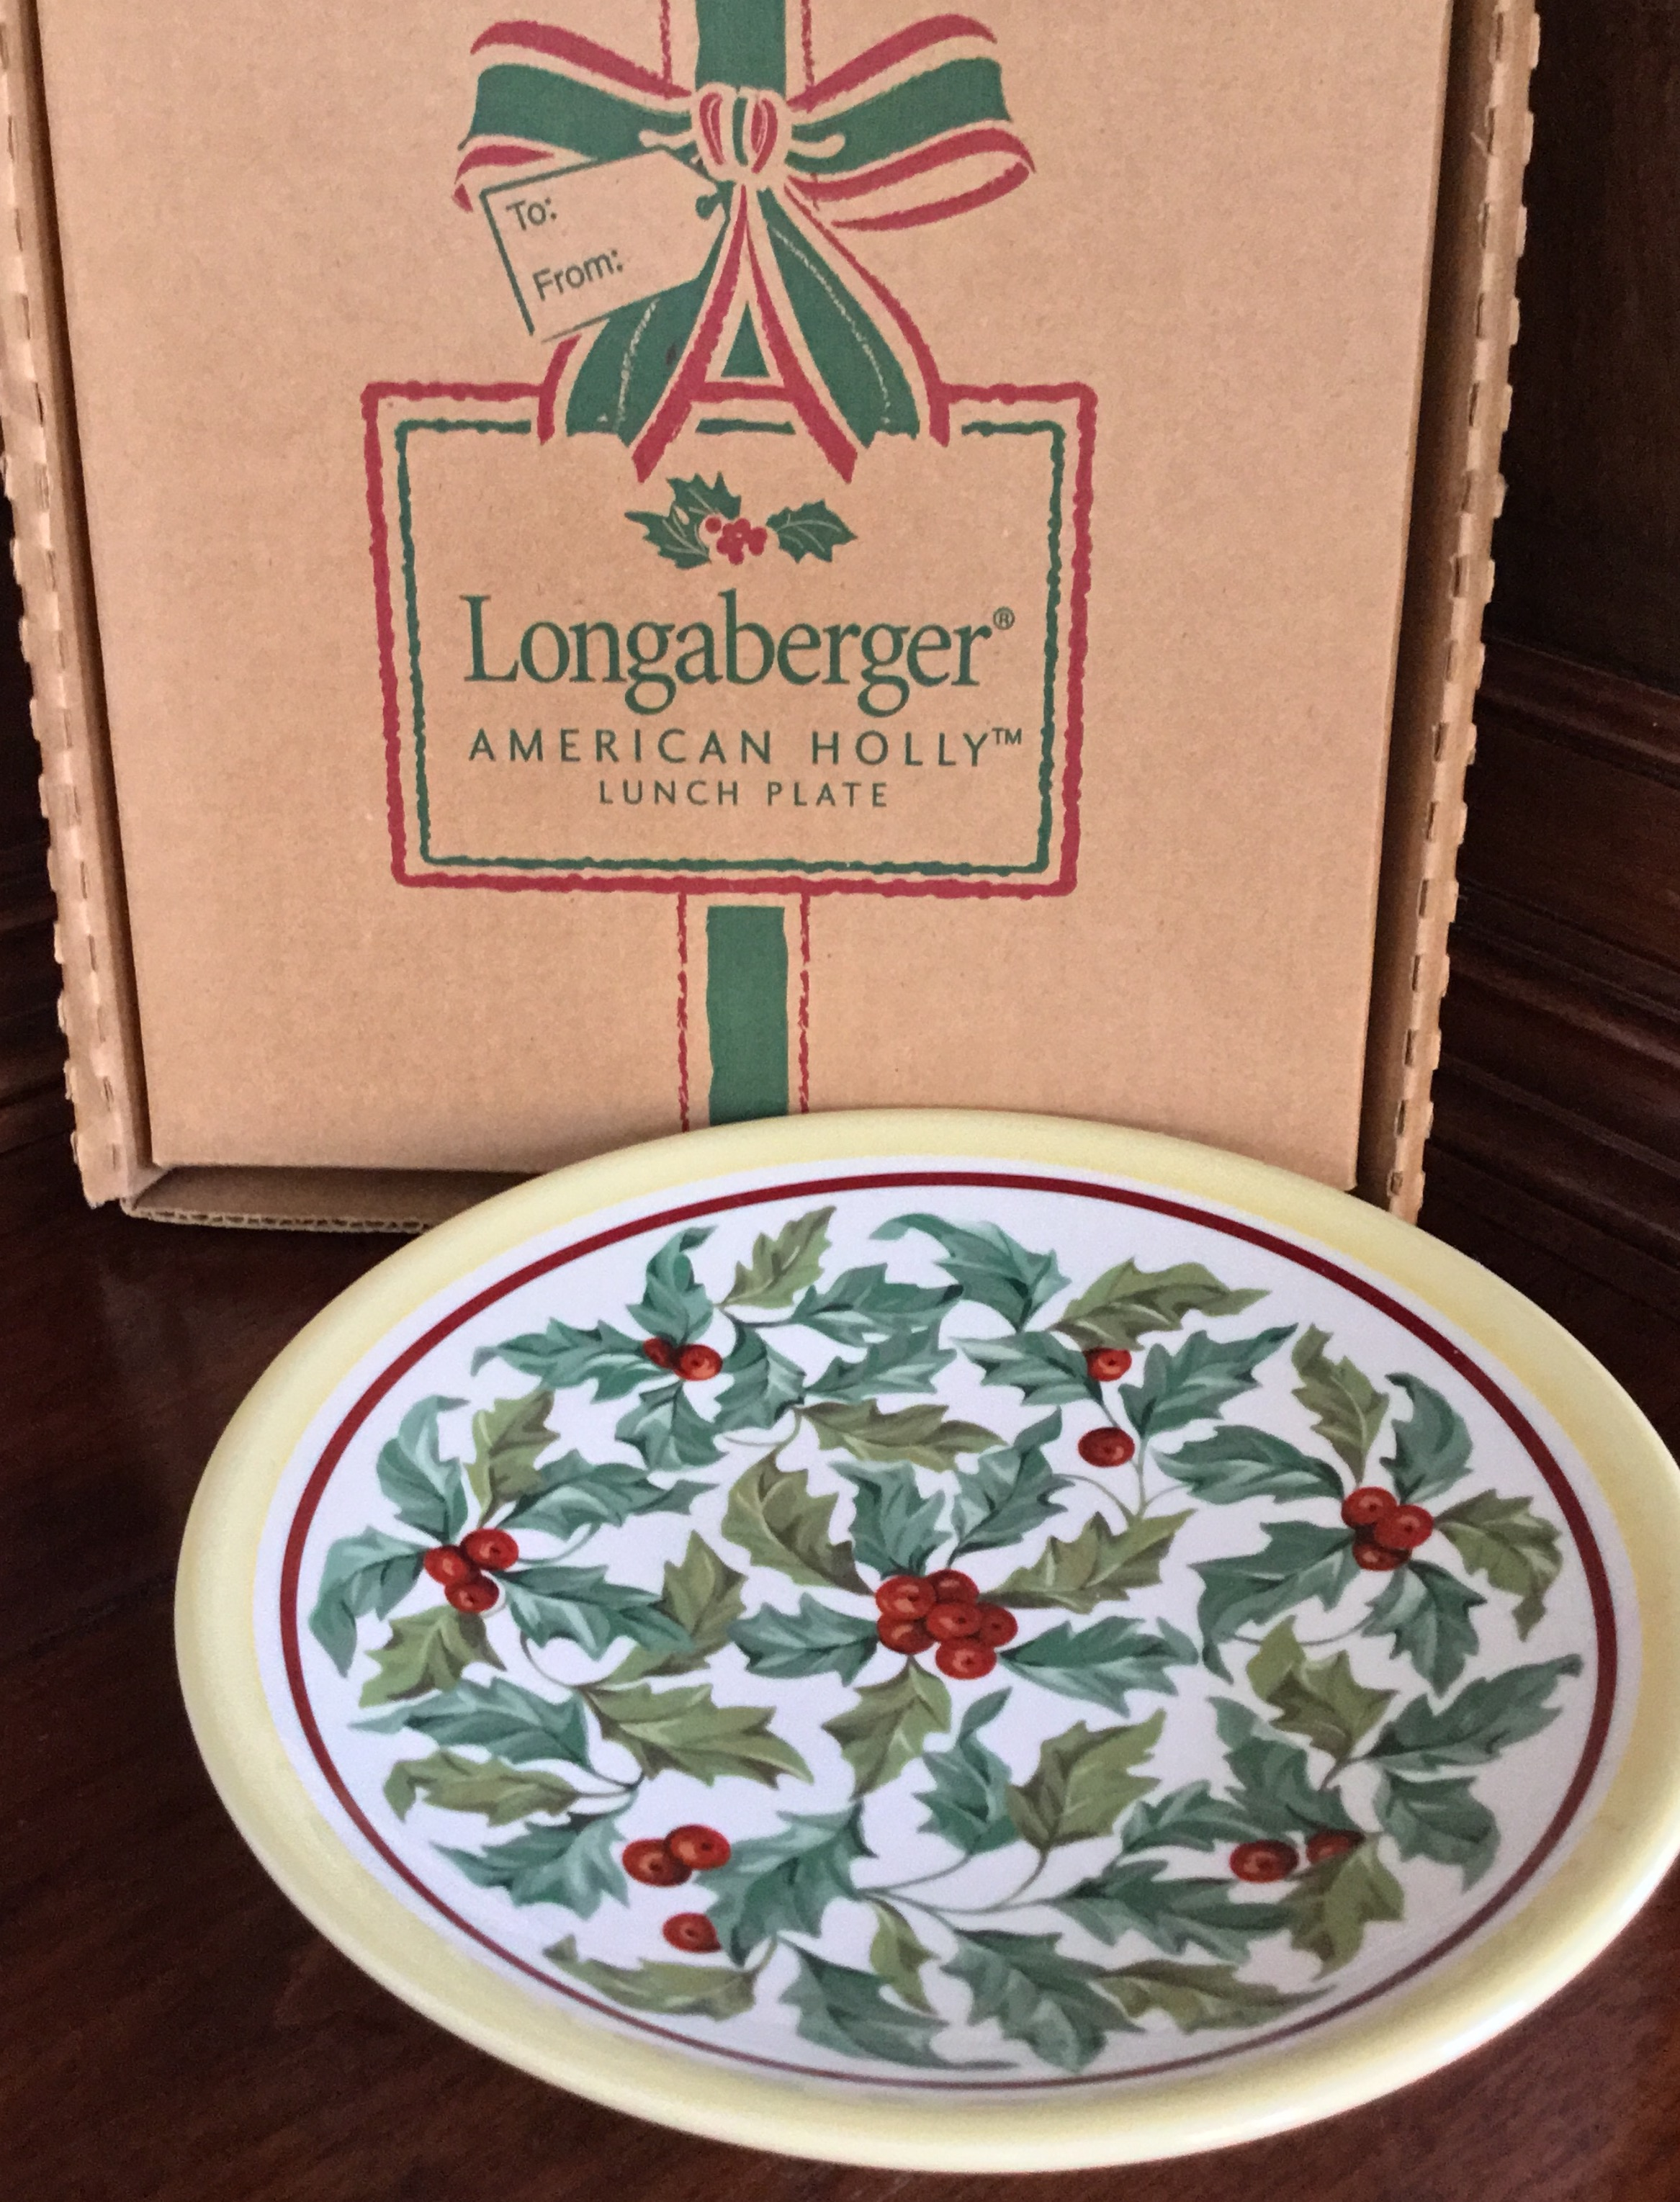 Longaberger American Holly Lunch Plate